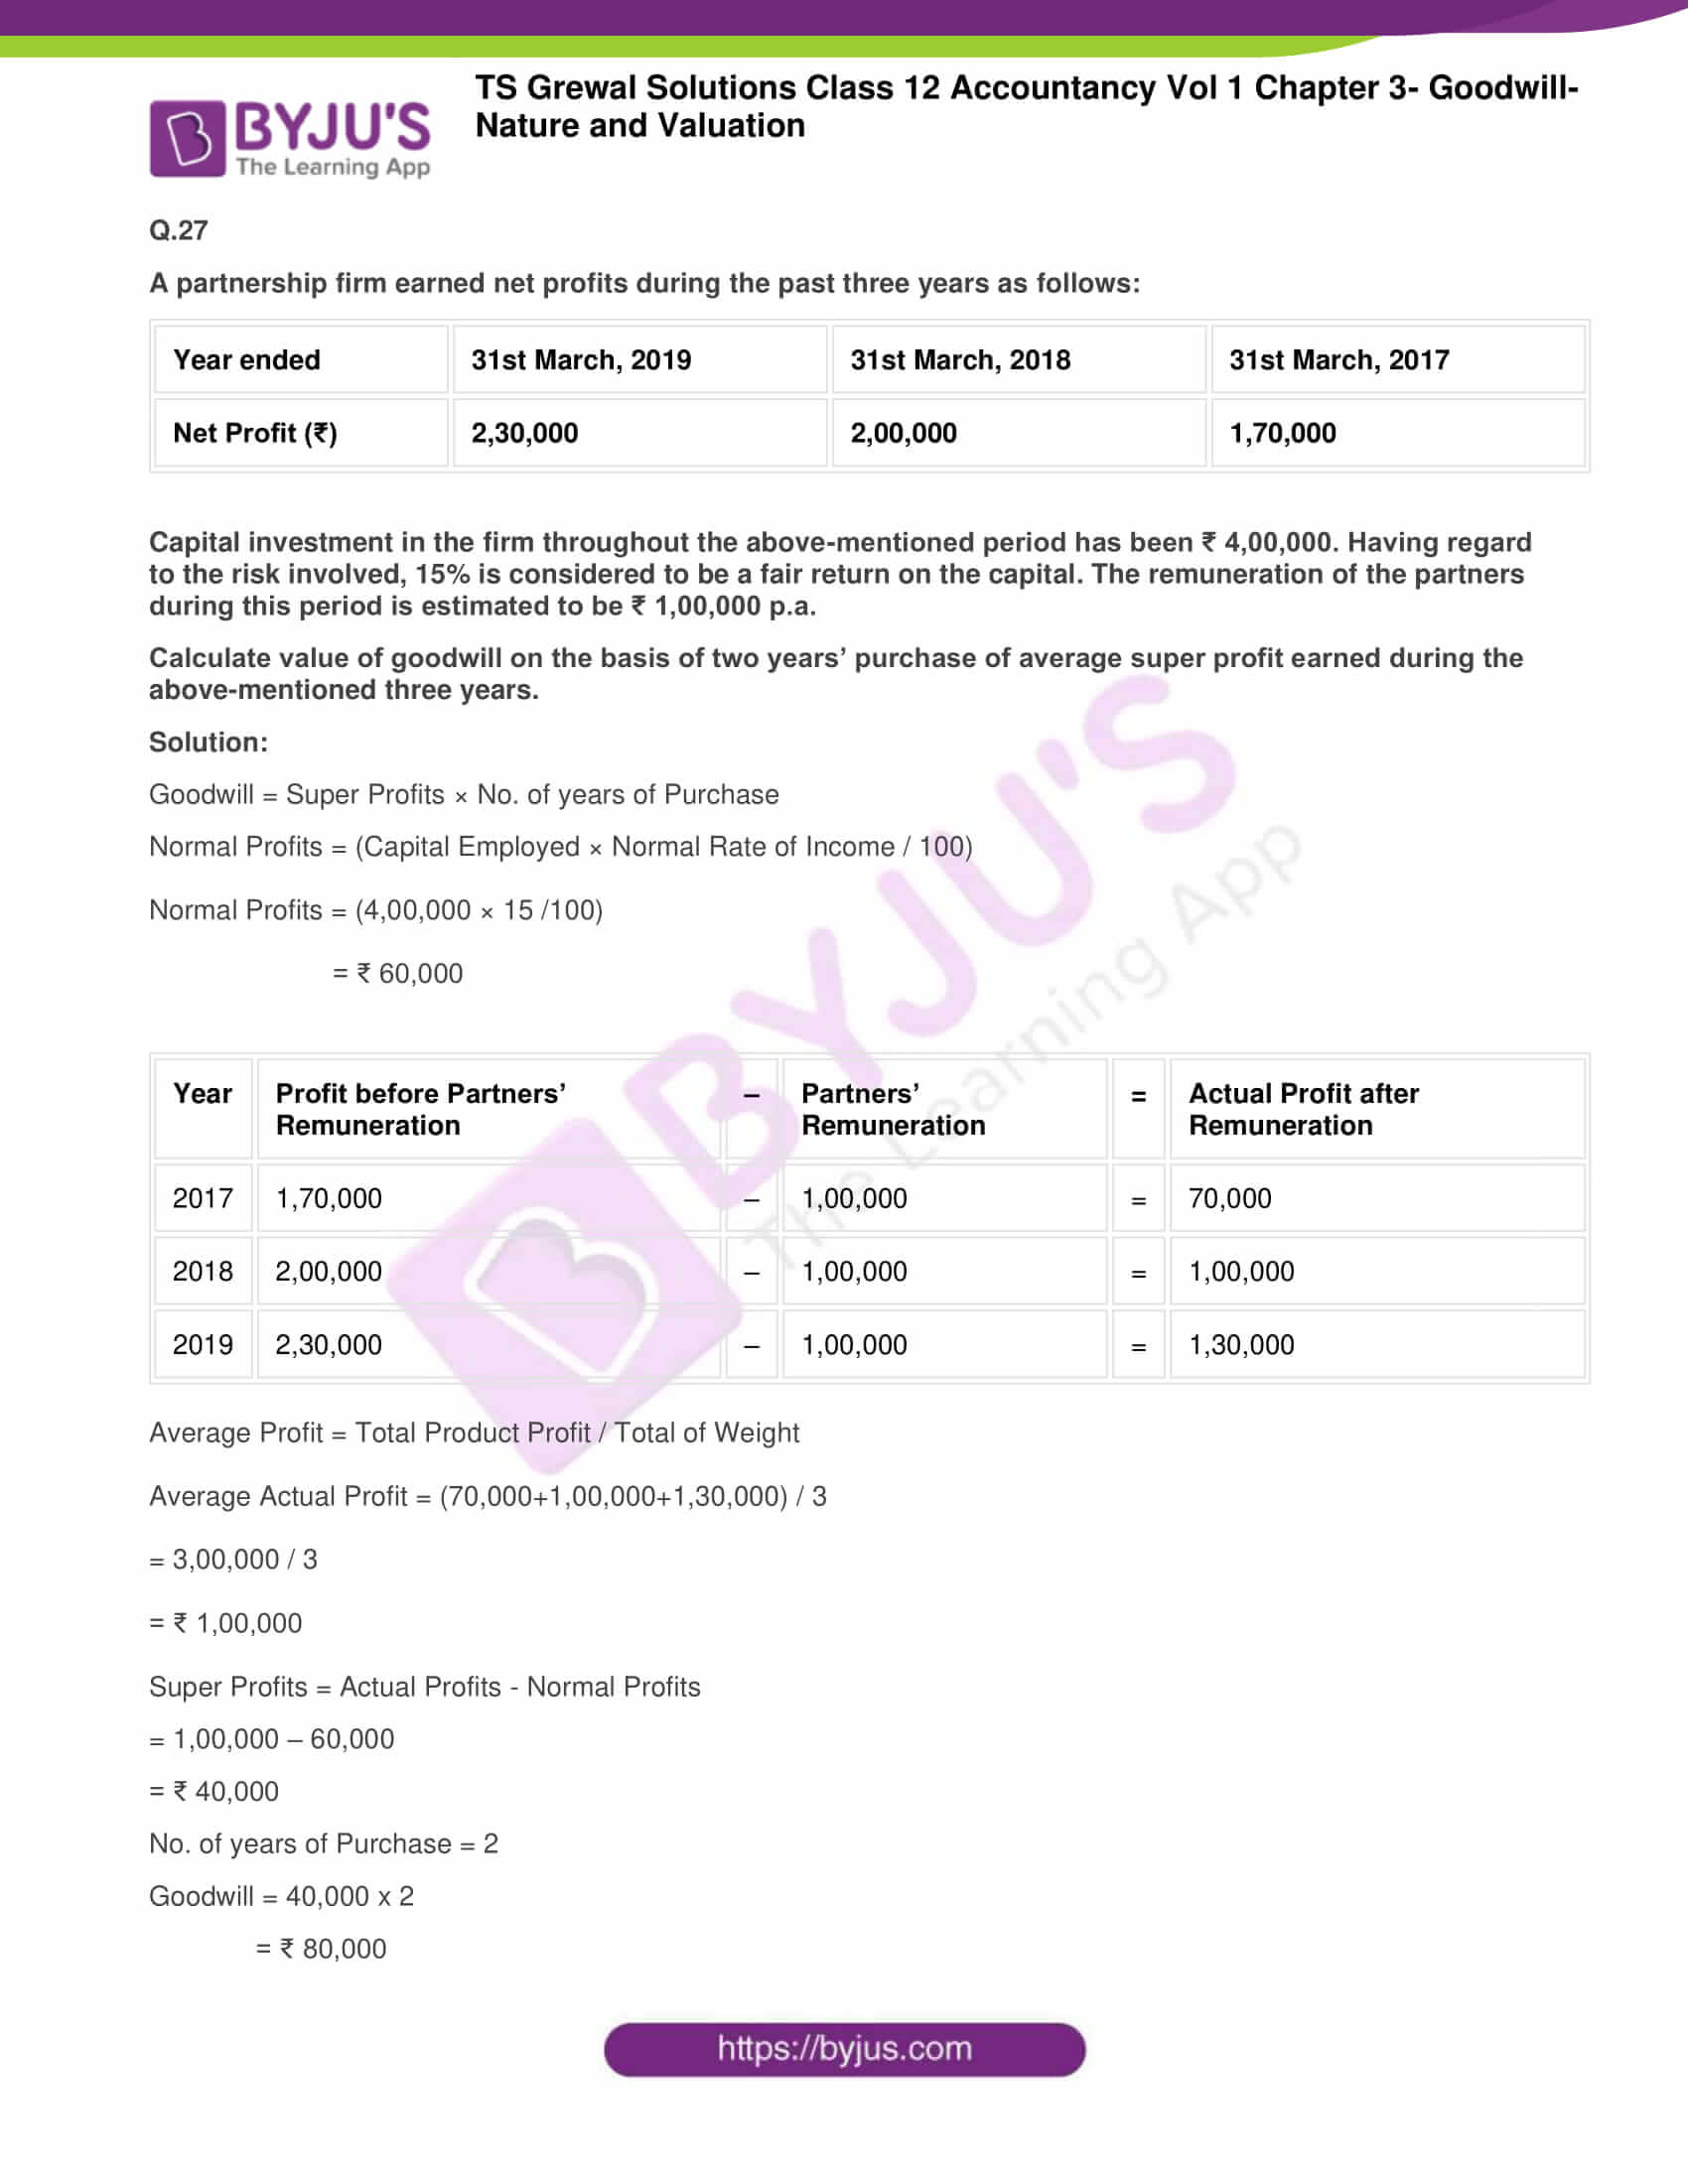 ts grewal solutions for class 12 accountancy vol 1 chapter 324